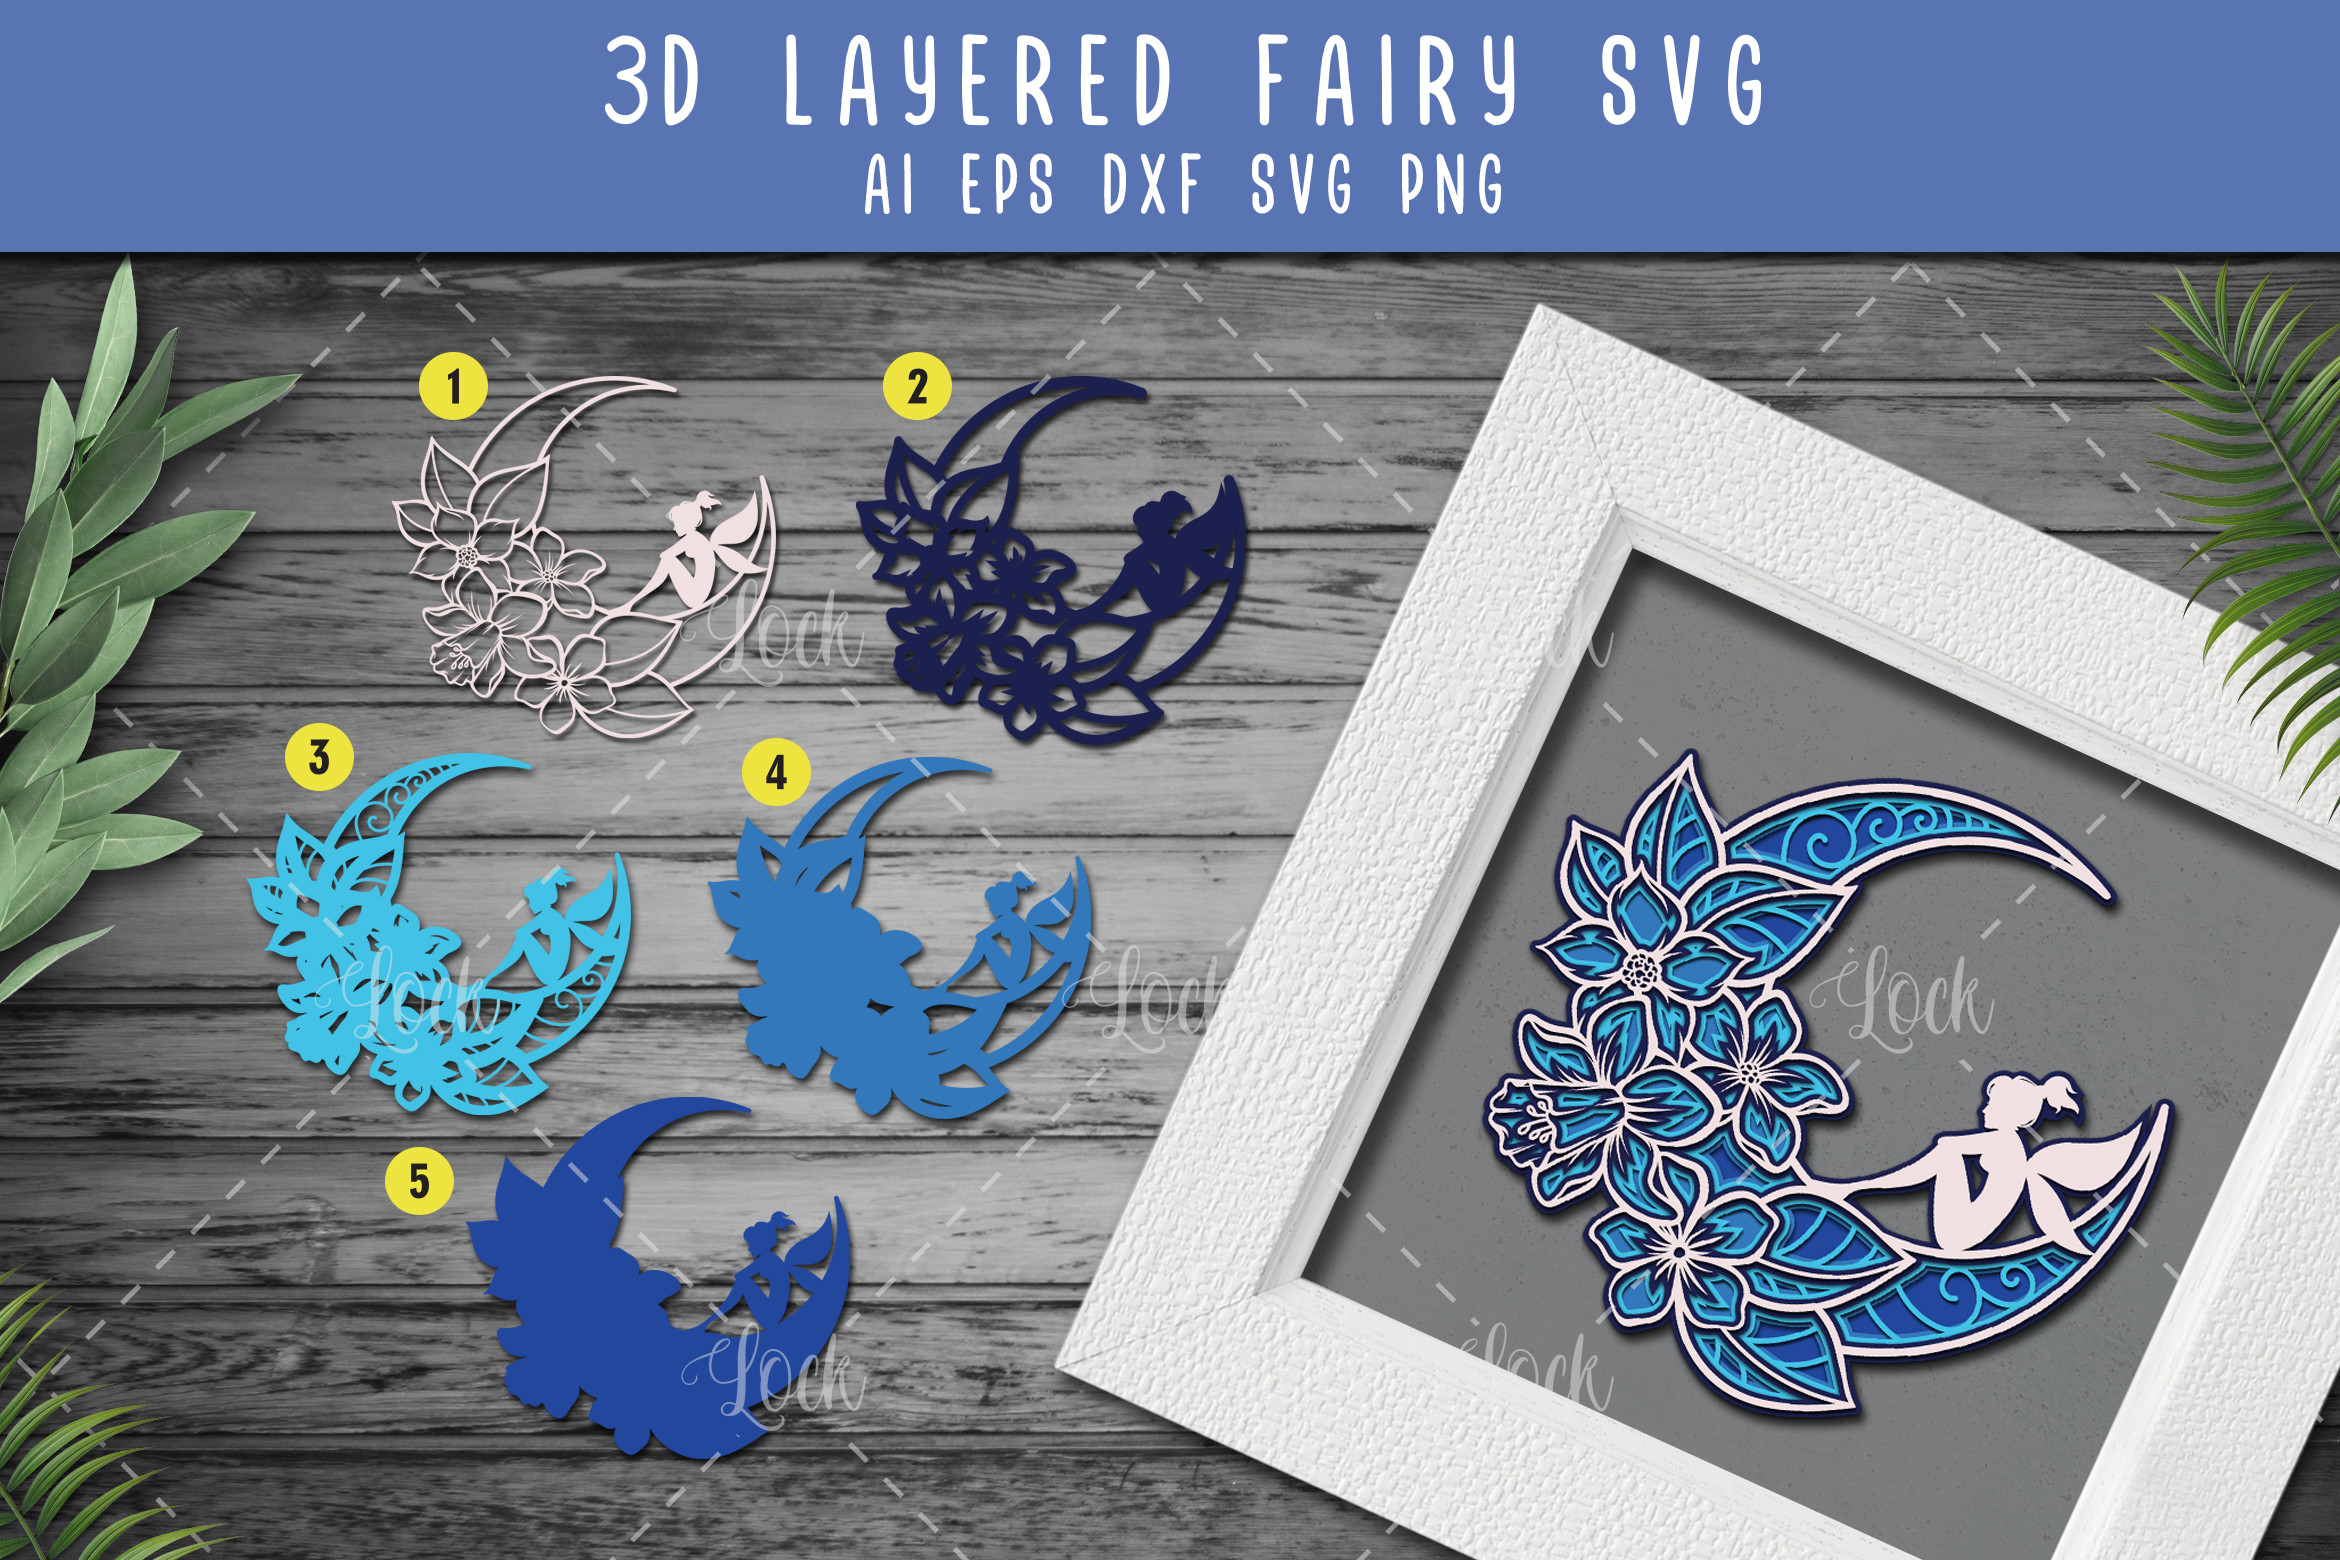 Crescent Moon and Fairy SVG 3d Layered SVG File